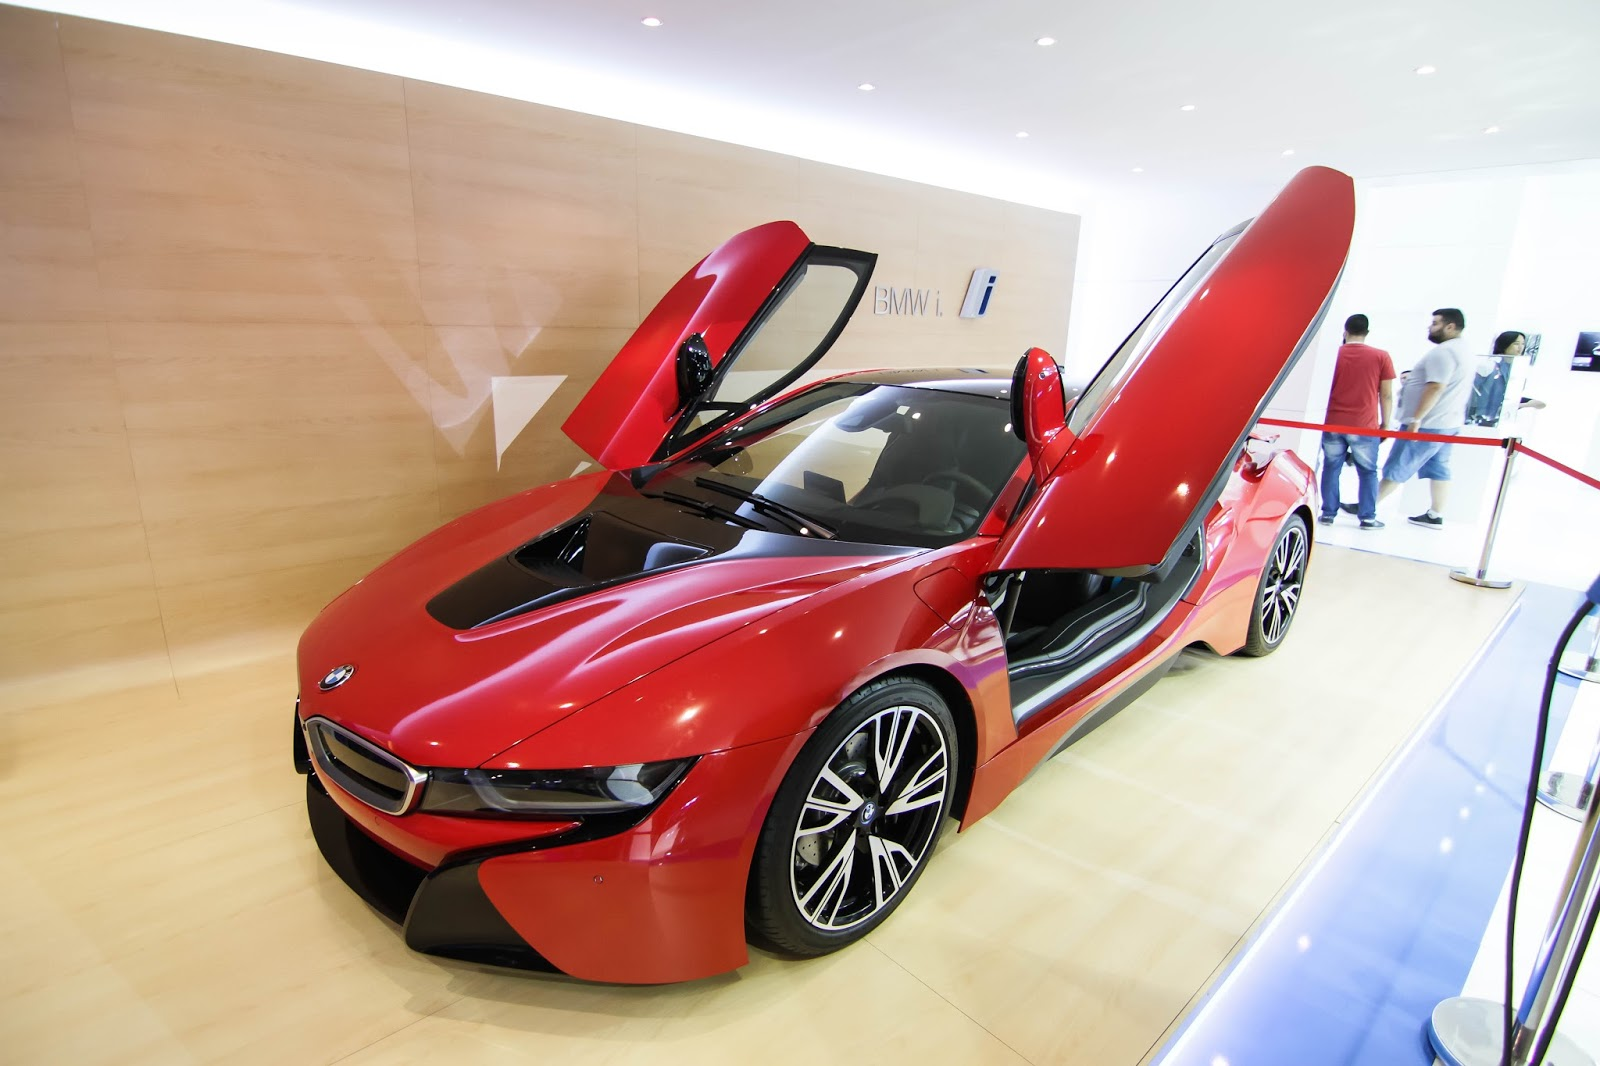 The Bmw I8 Protonic Red Edition Ungodly Bold At Qatar Motor Show